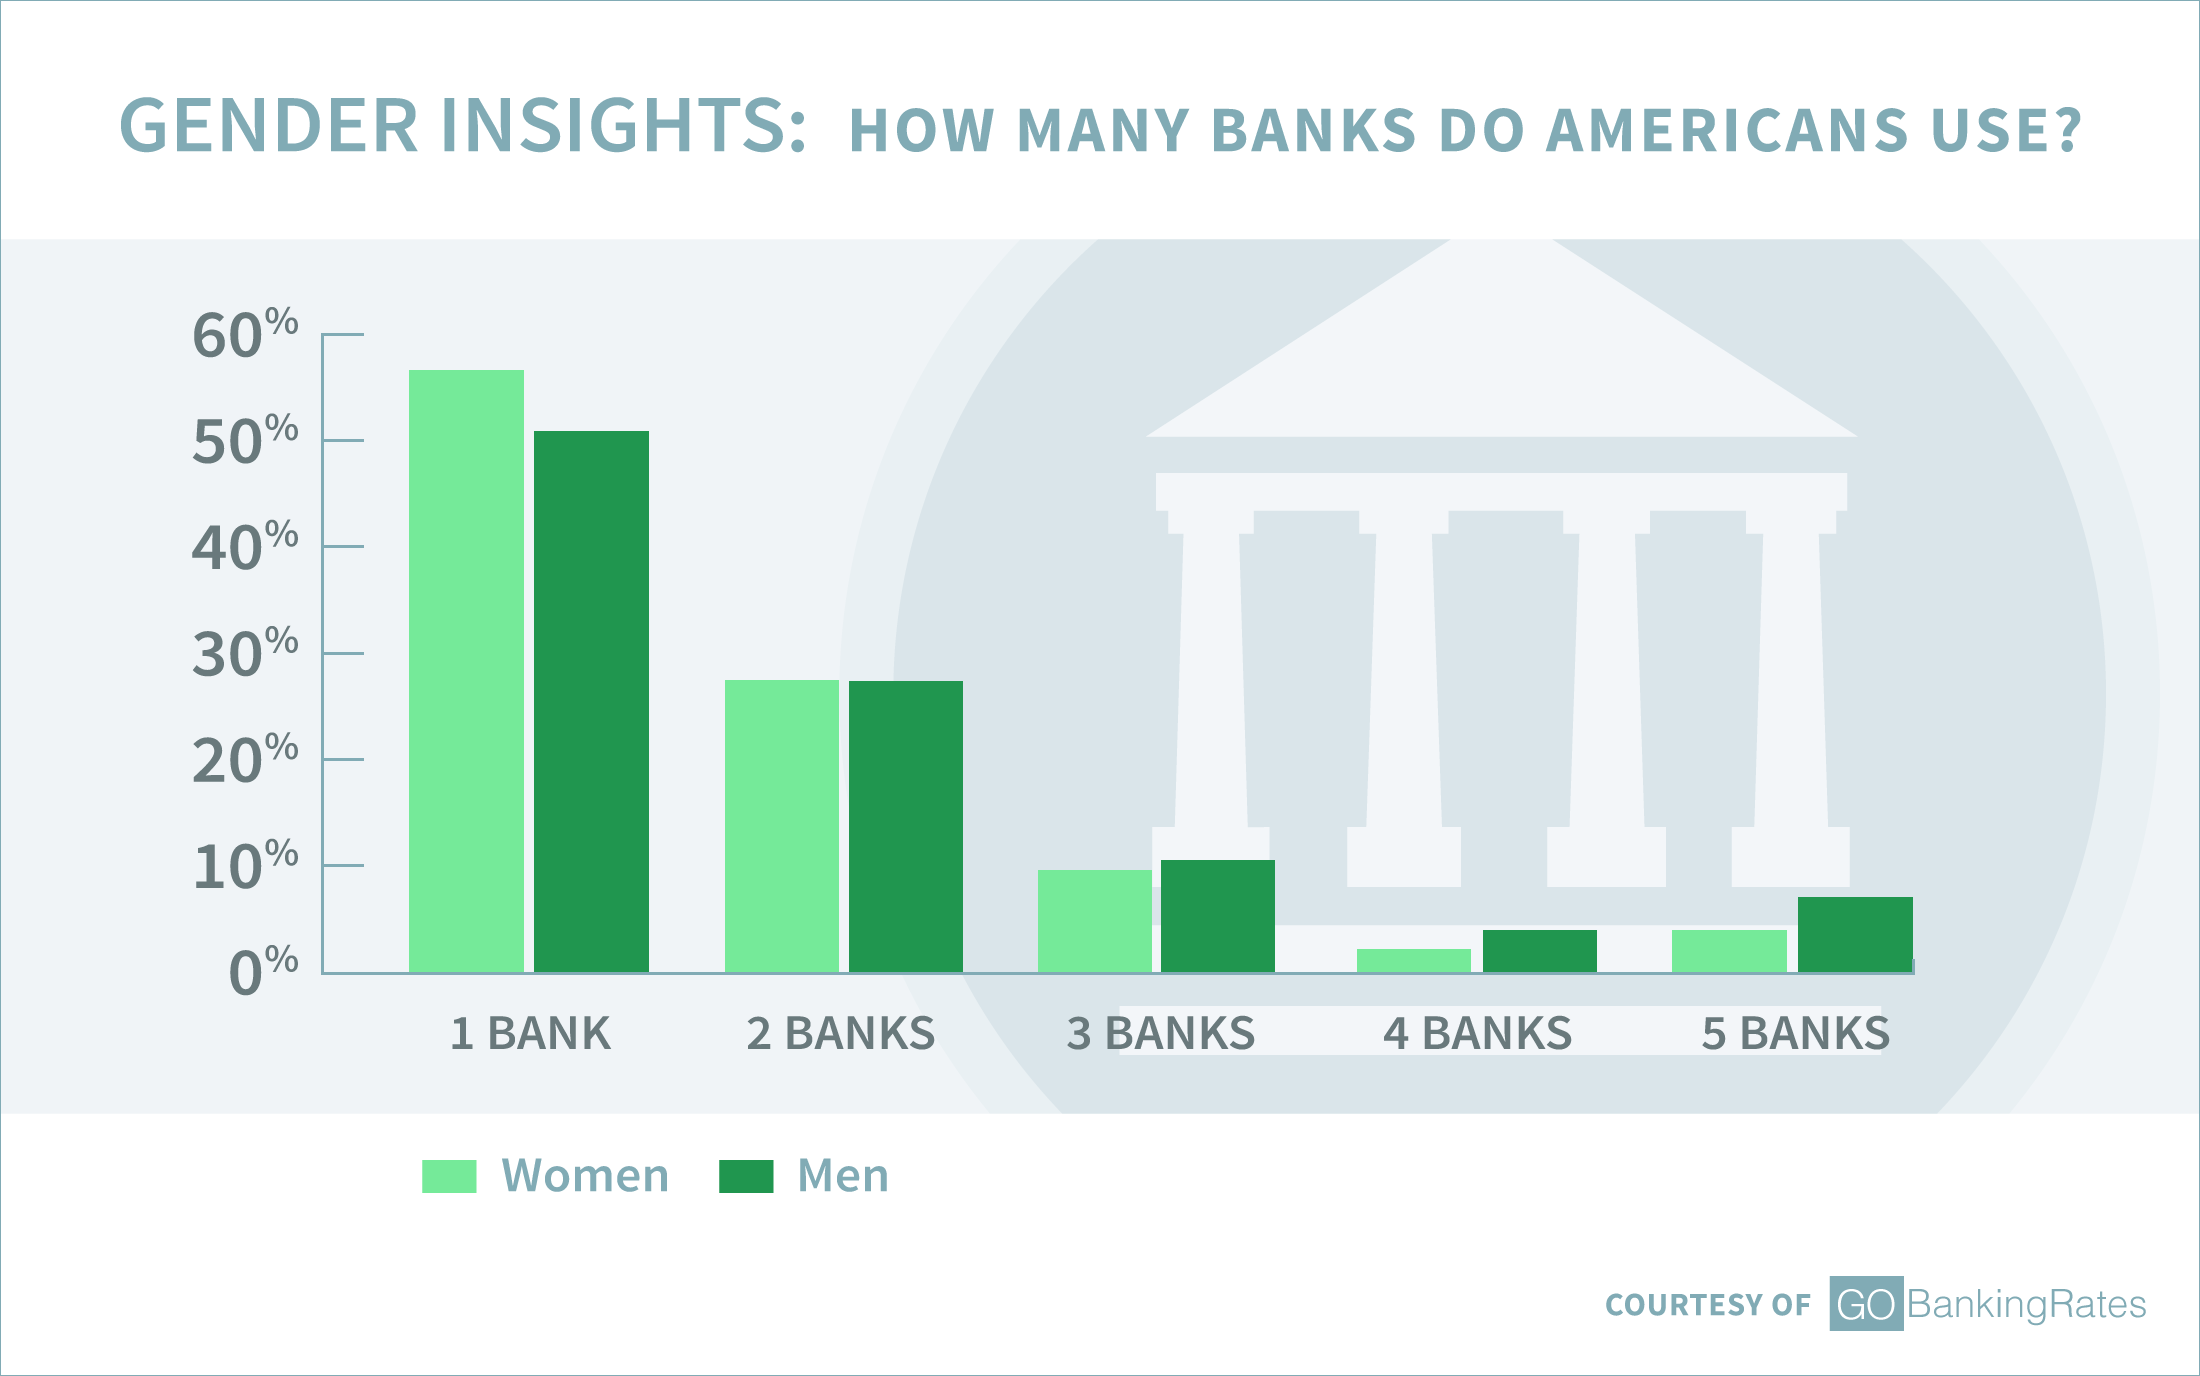 Gender Insights: How Many Banks Do Americans Use?